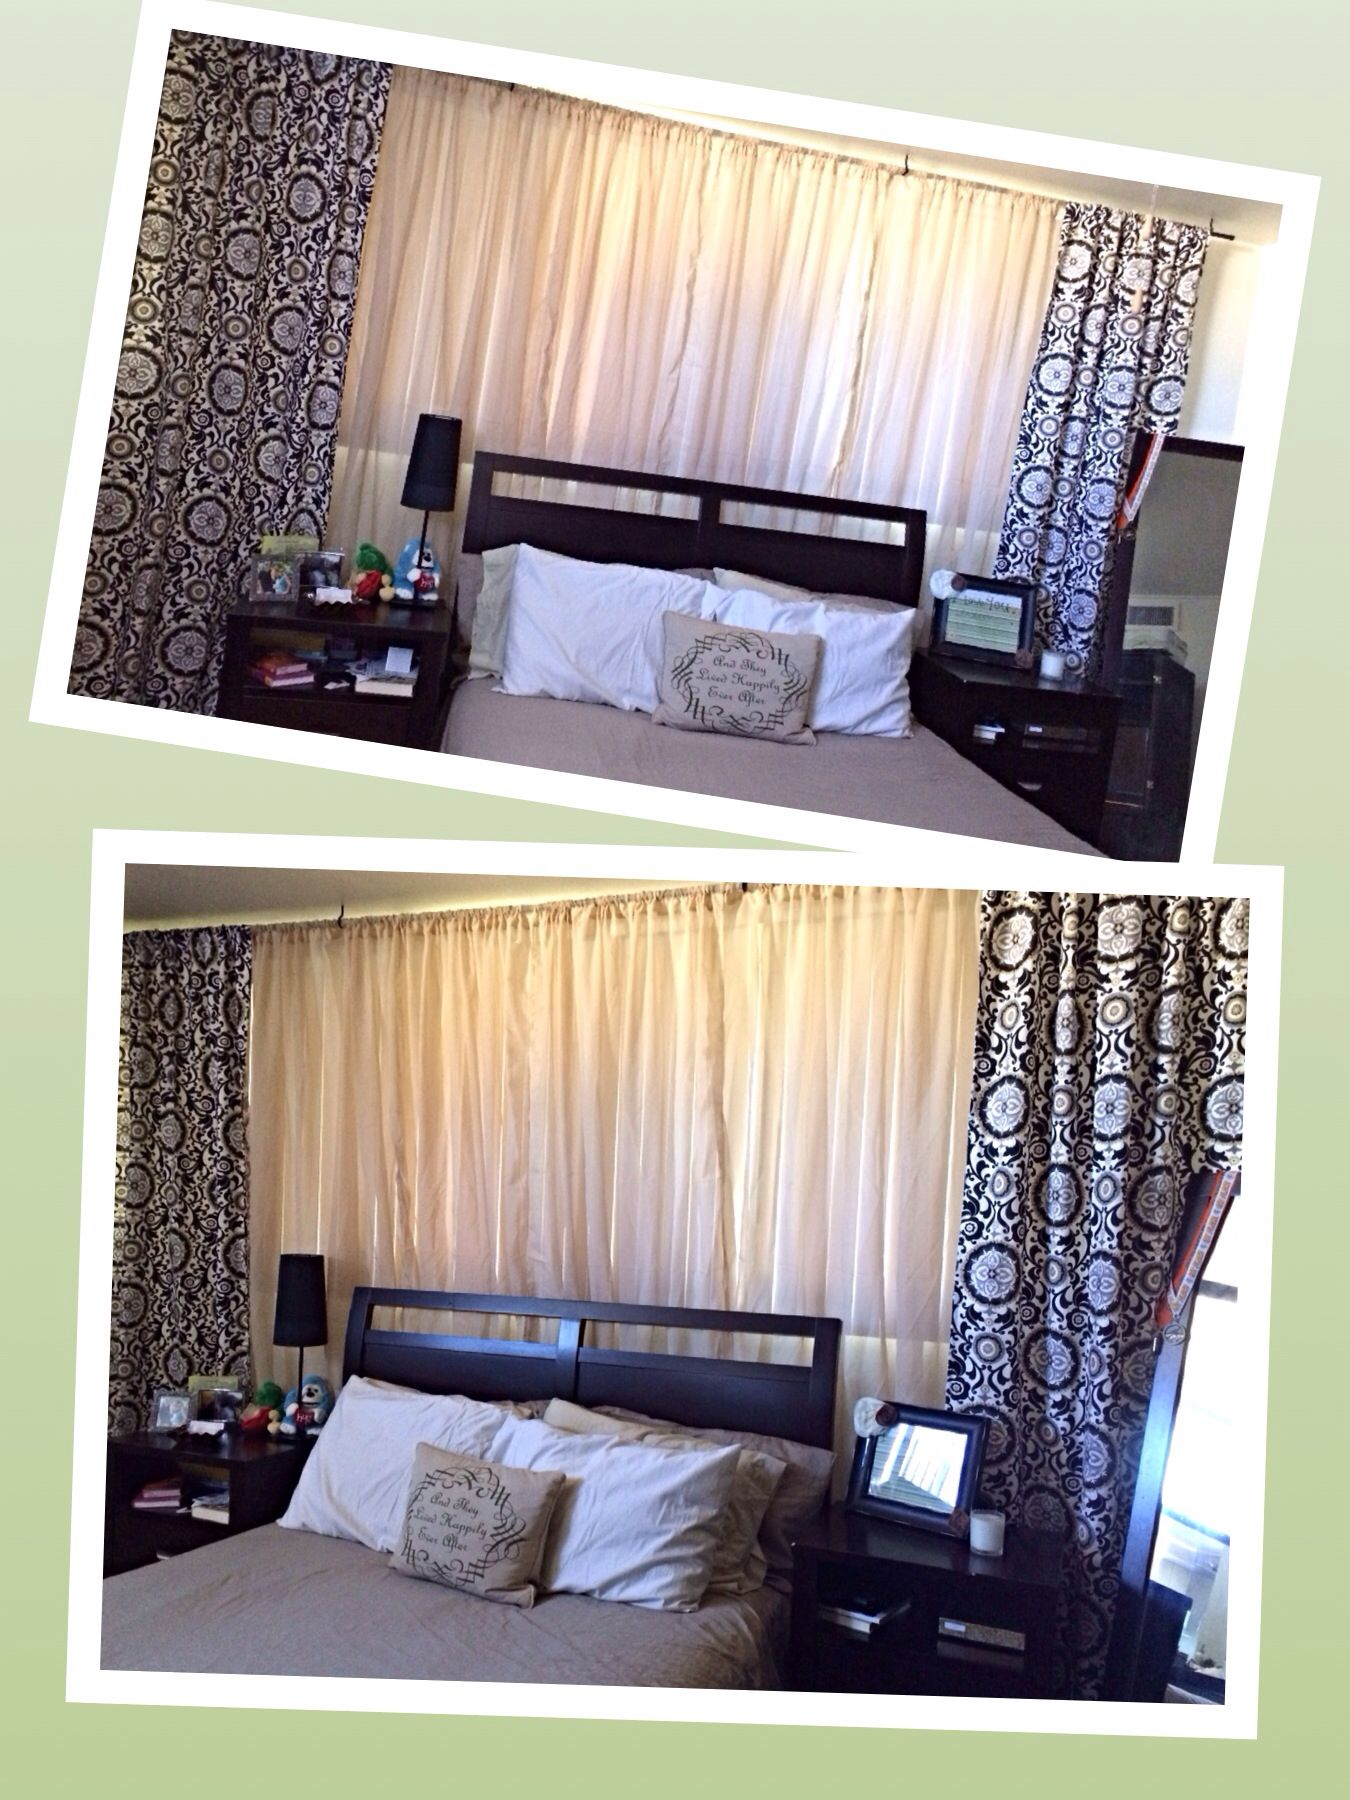 Diy Curtains Behind Bed In Master To Cover Wall Full Of Windows